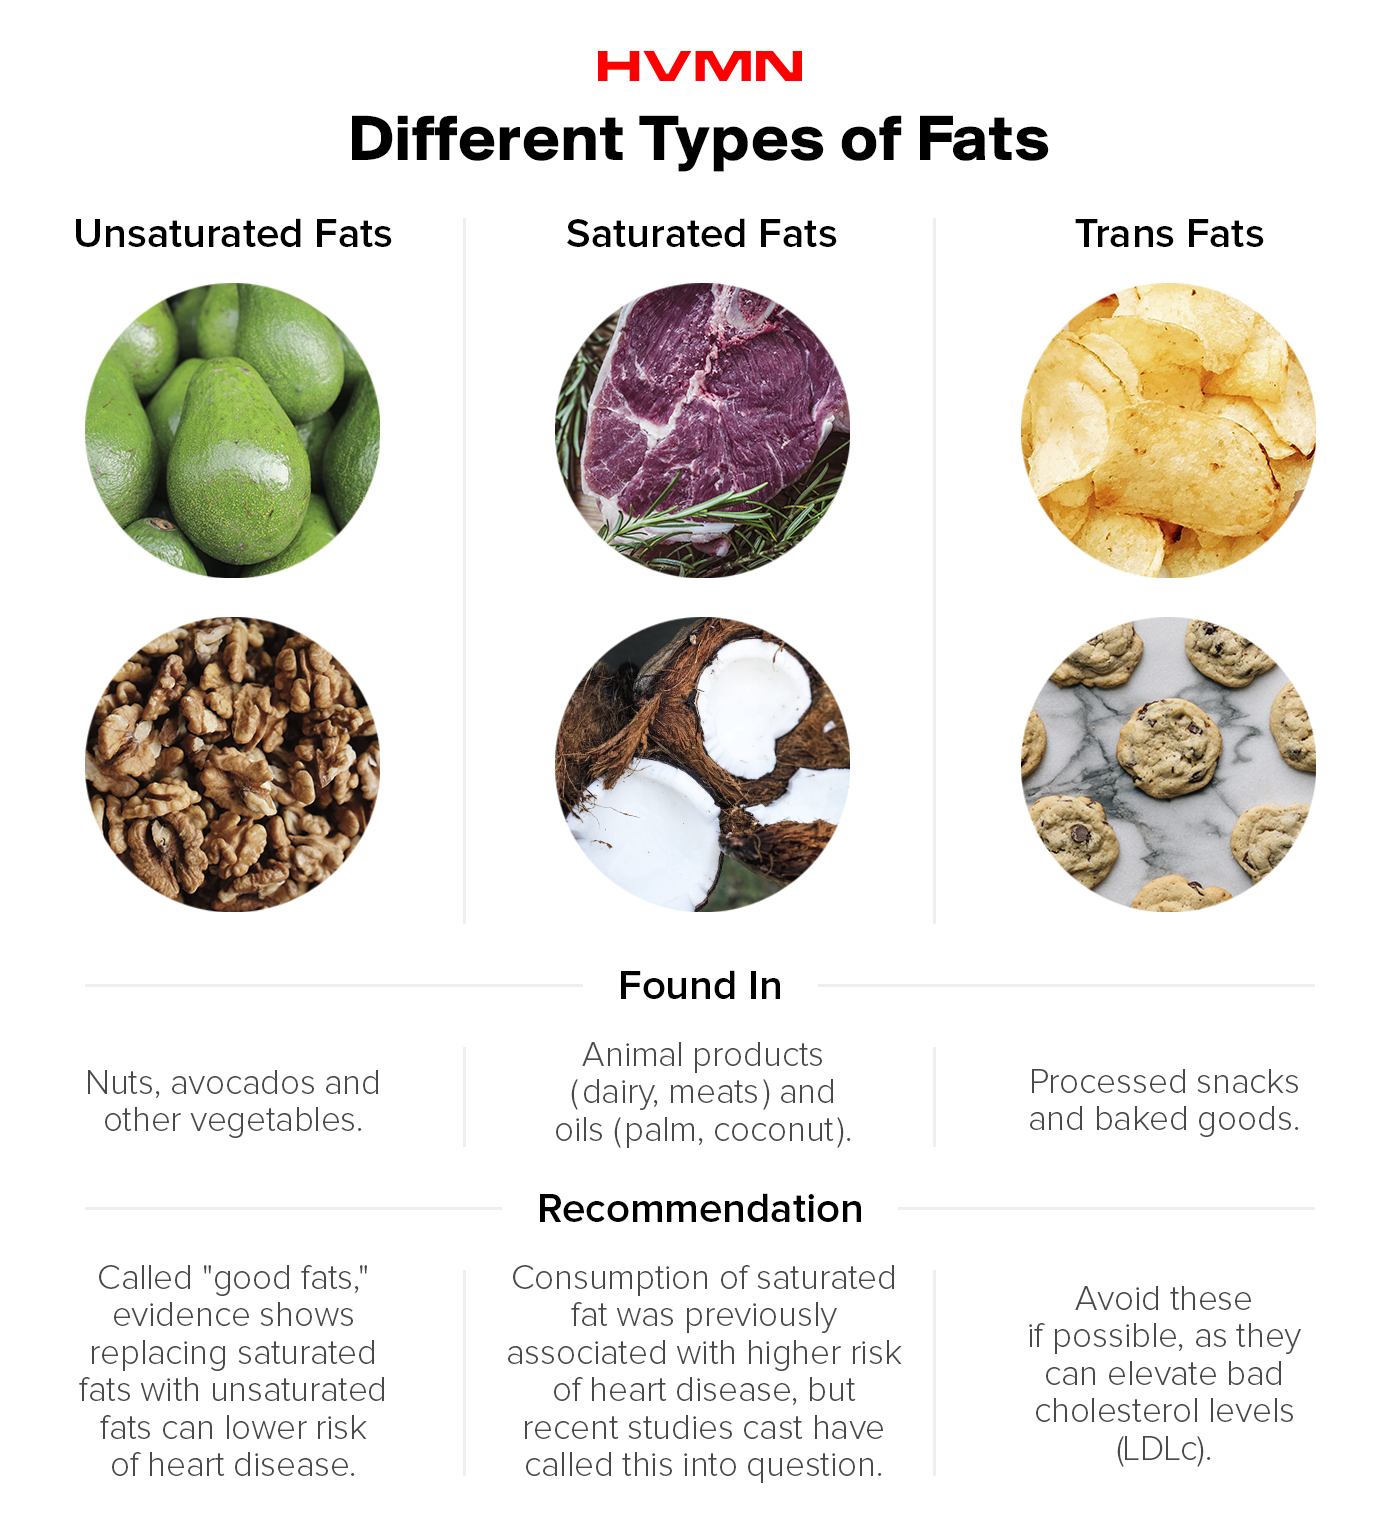 Images of the different kinds of fats: avocados, nuts, steak and coconut. And the bad kinds of trans fat, chips and cookies.